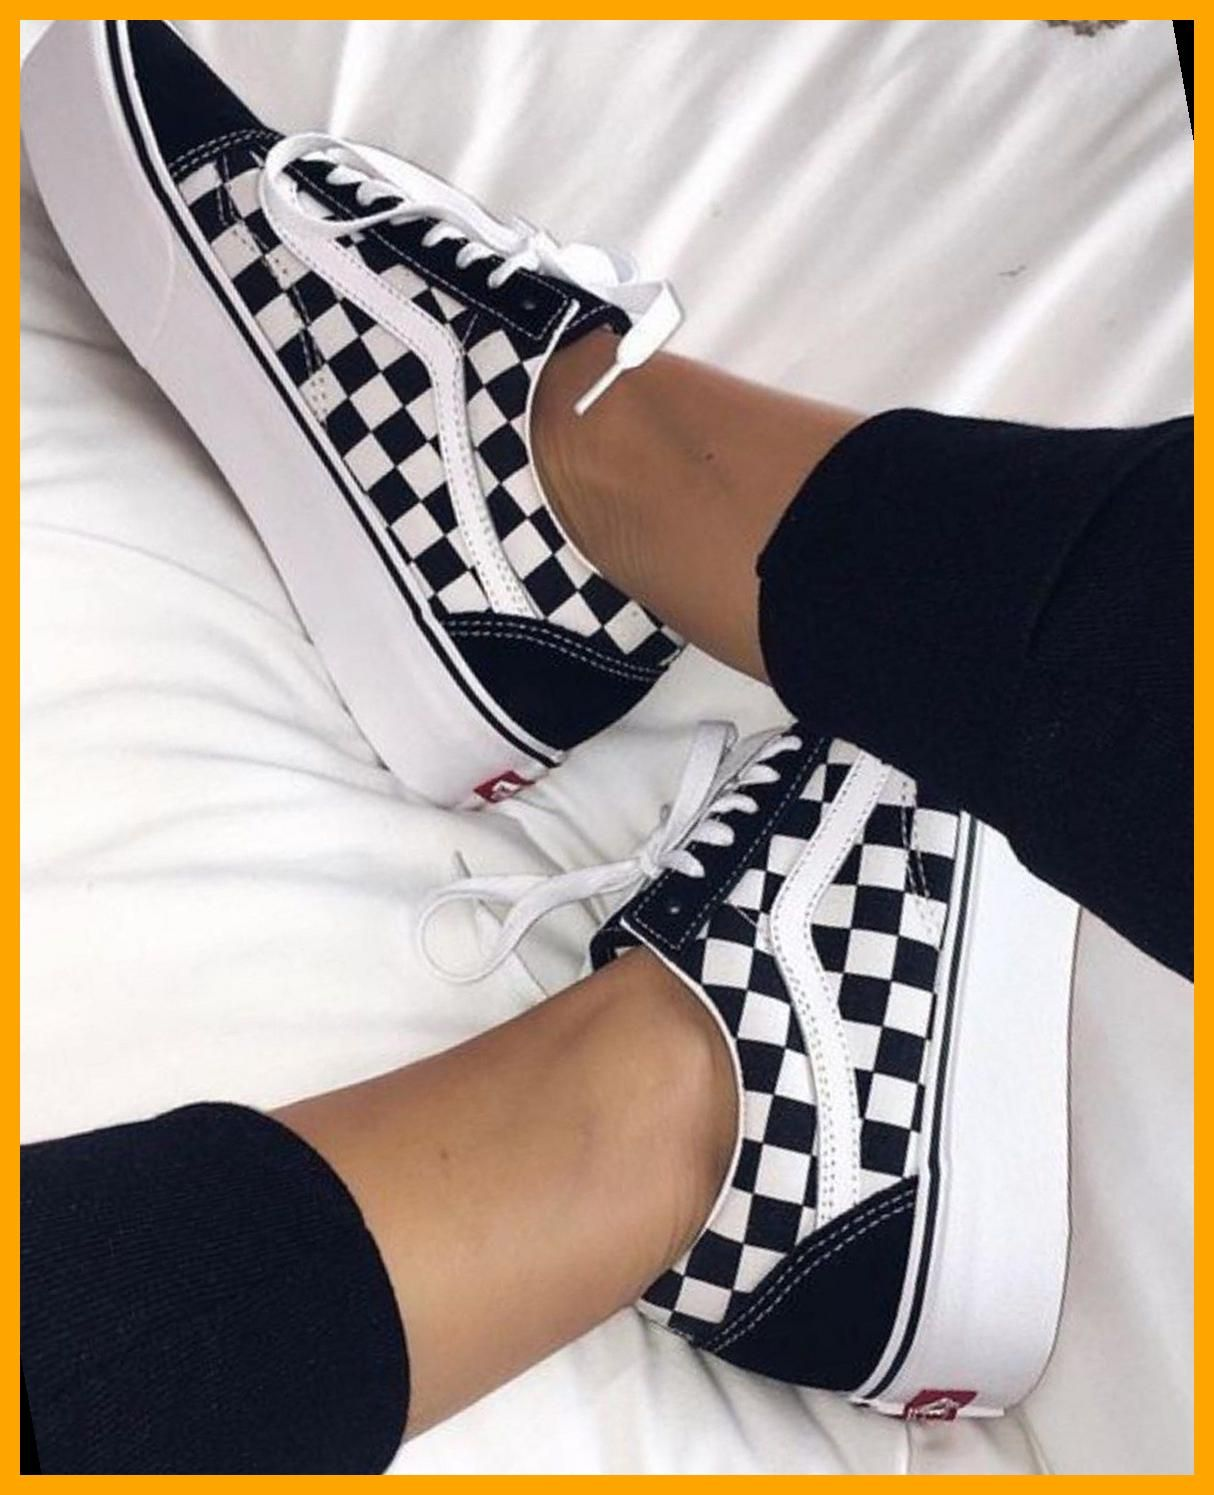 Buy Vans shoes online | Fashionchick.nl 34 | Vans Sneakers Outfit ...